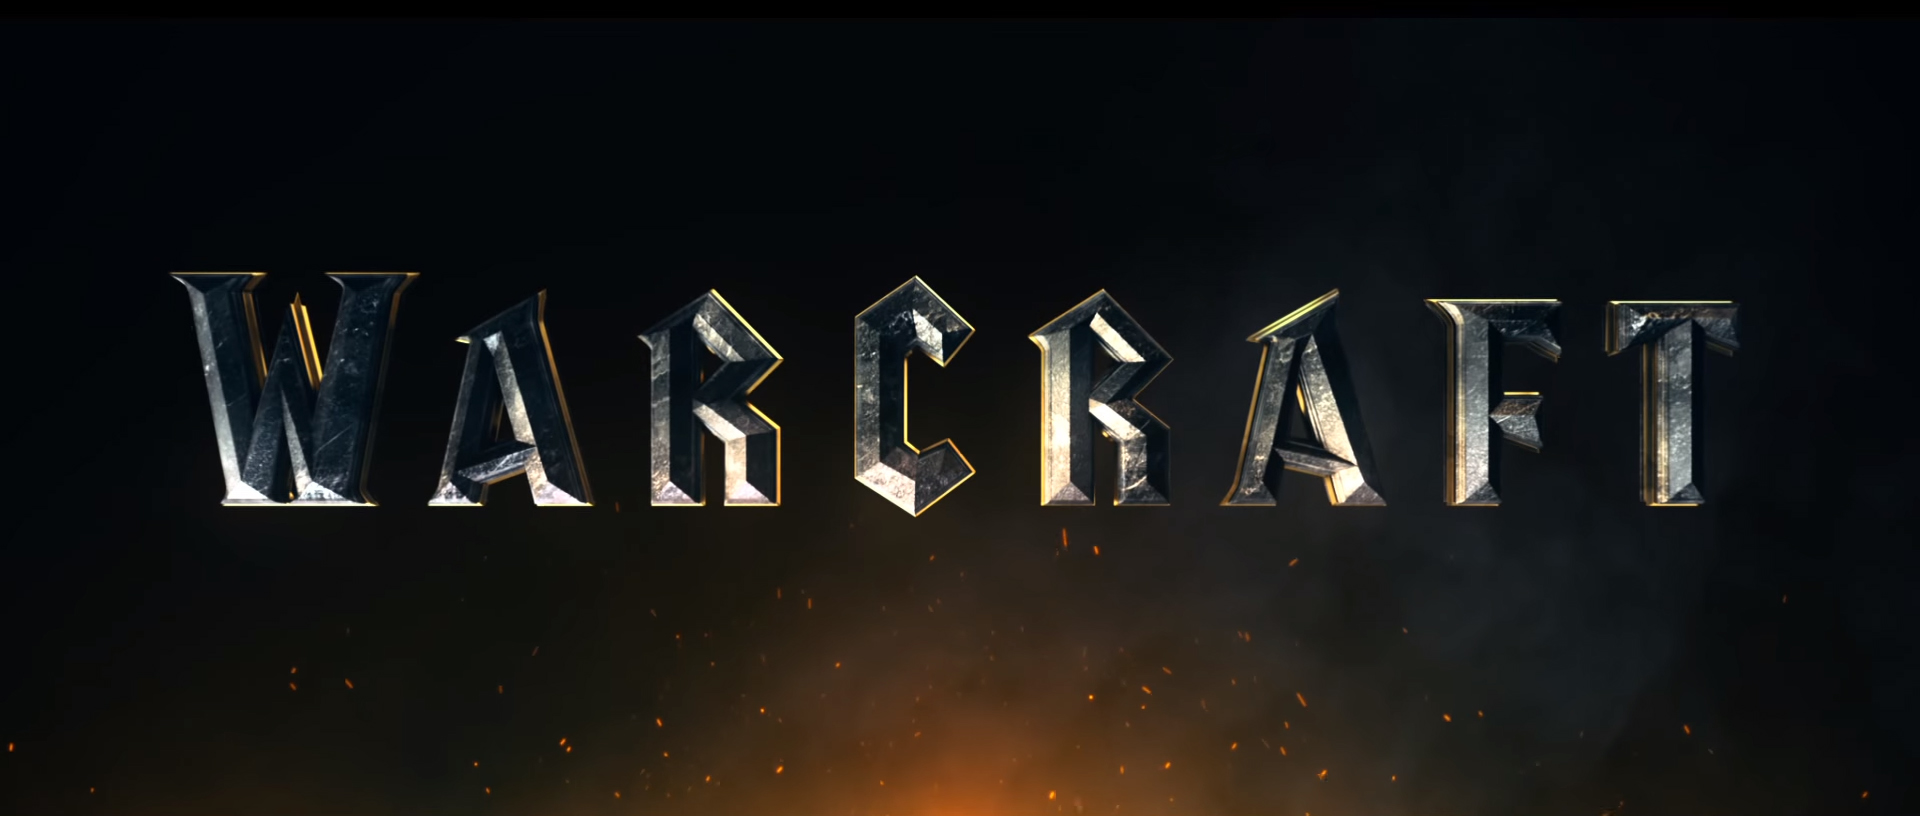 Warcraft, World of Warcraft